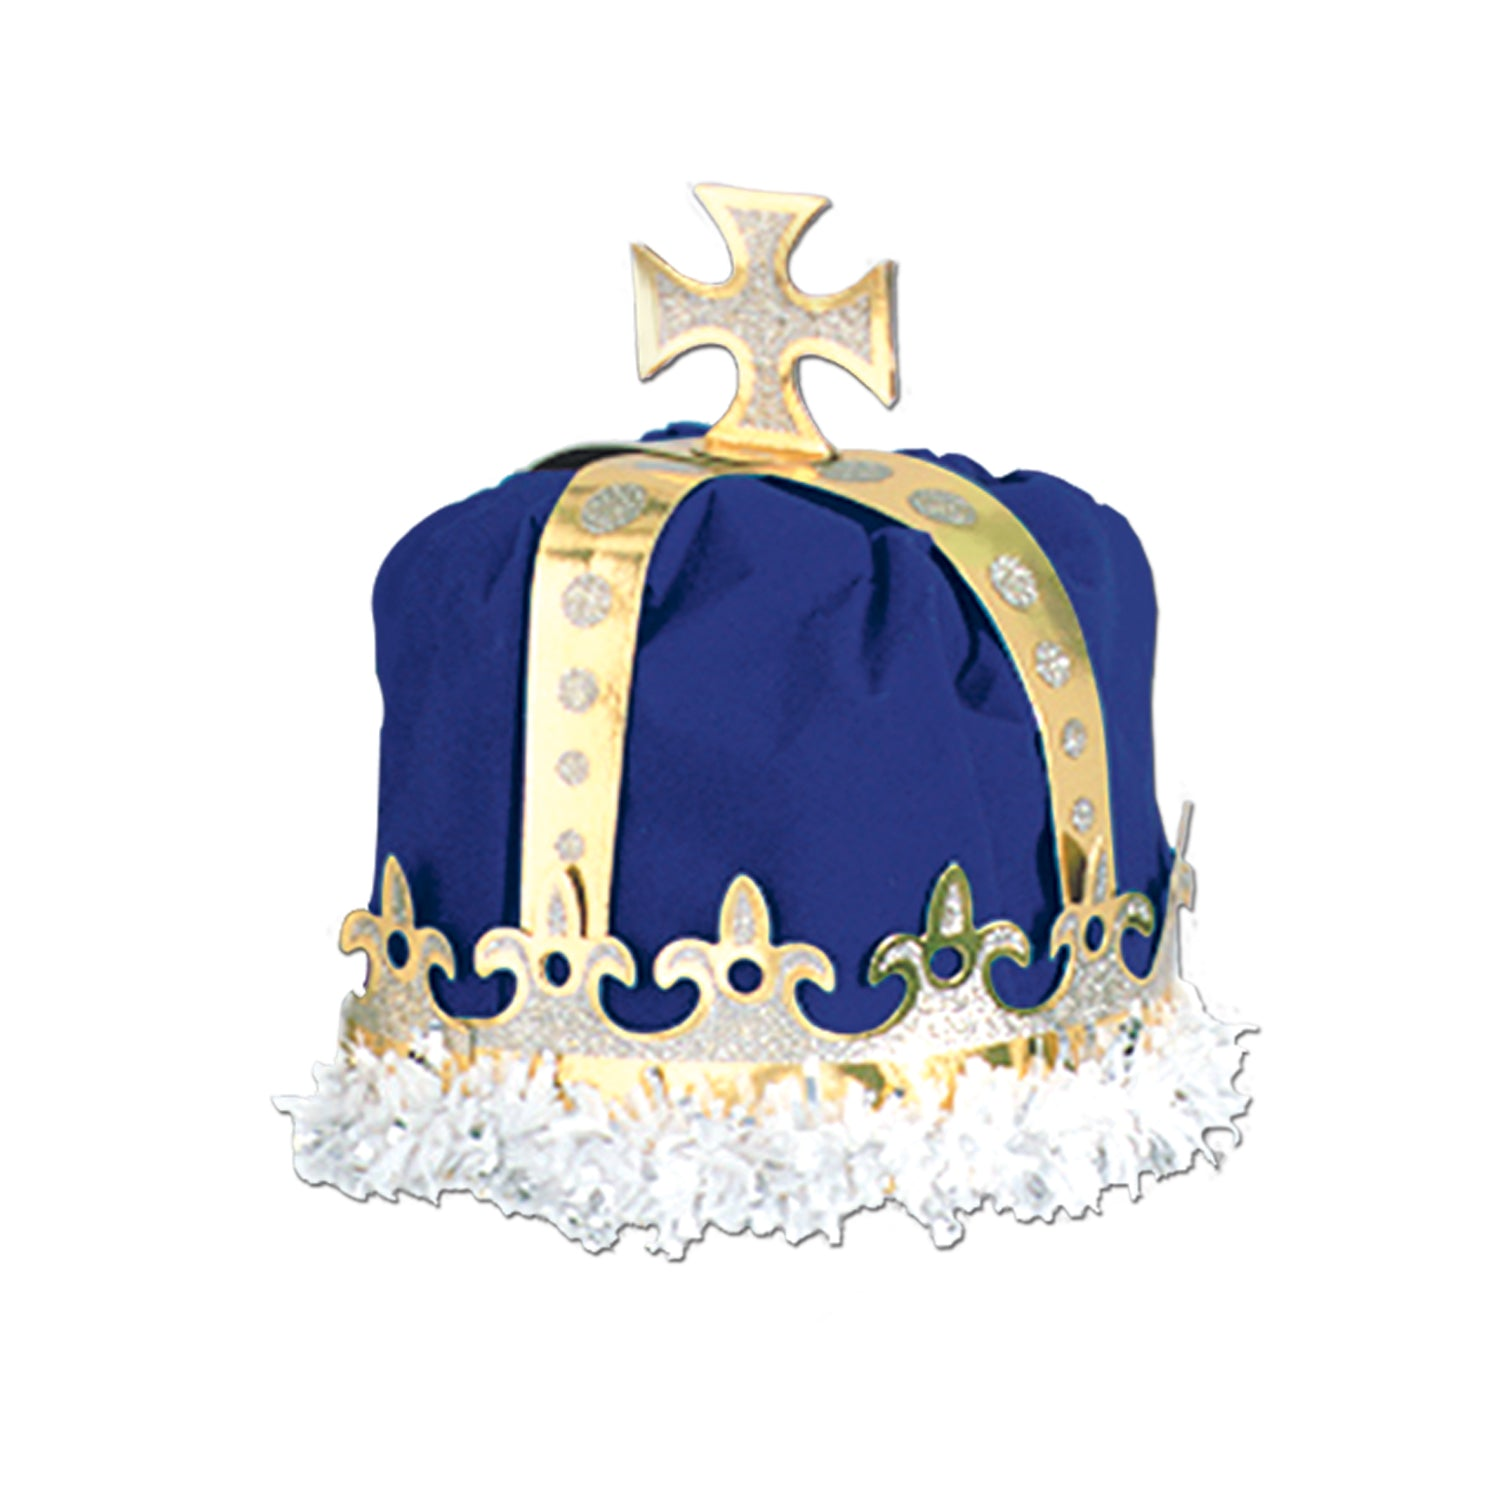 569ab47ab9f 12 Case) Beistle Medieval Party Royal King s Crown blue - Bulk Party ...